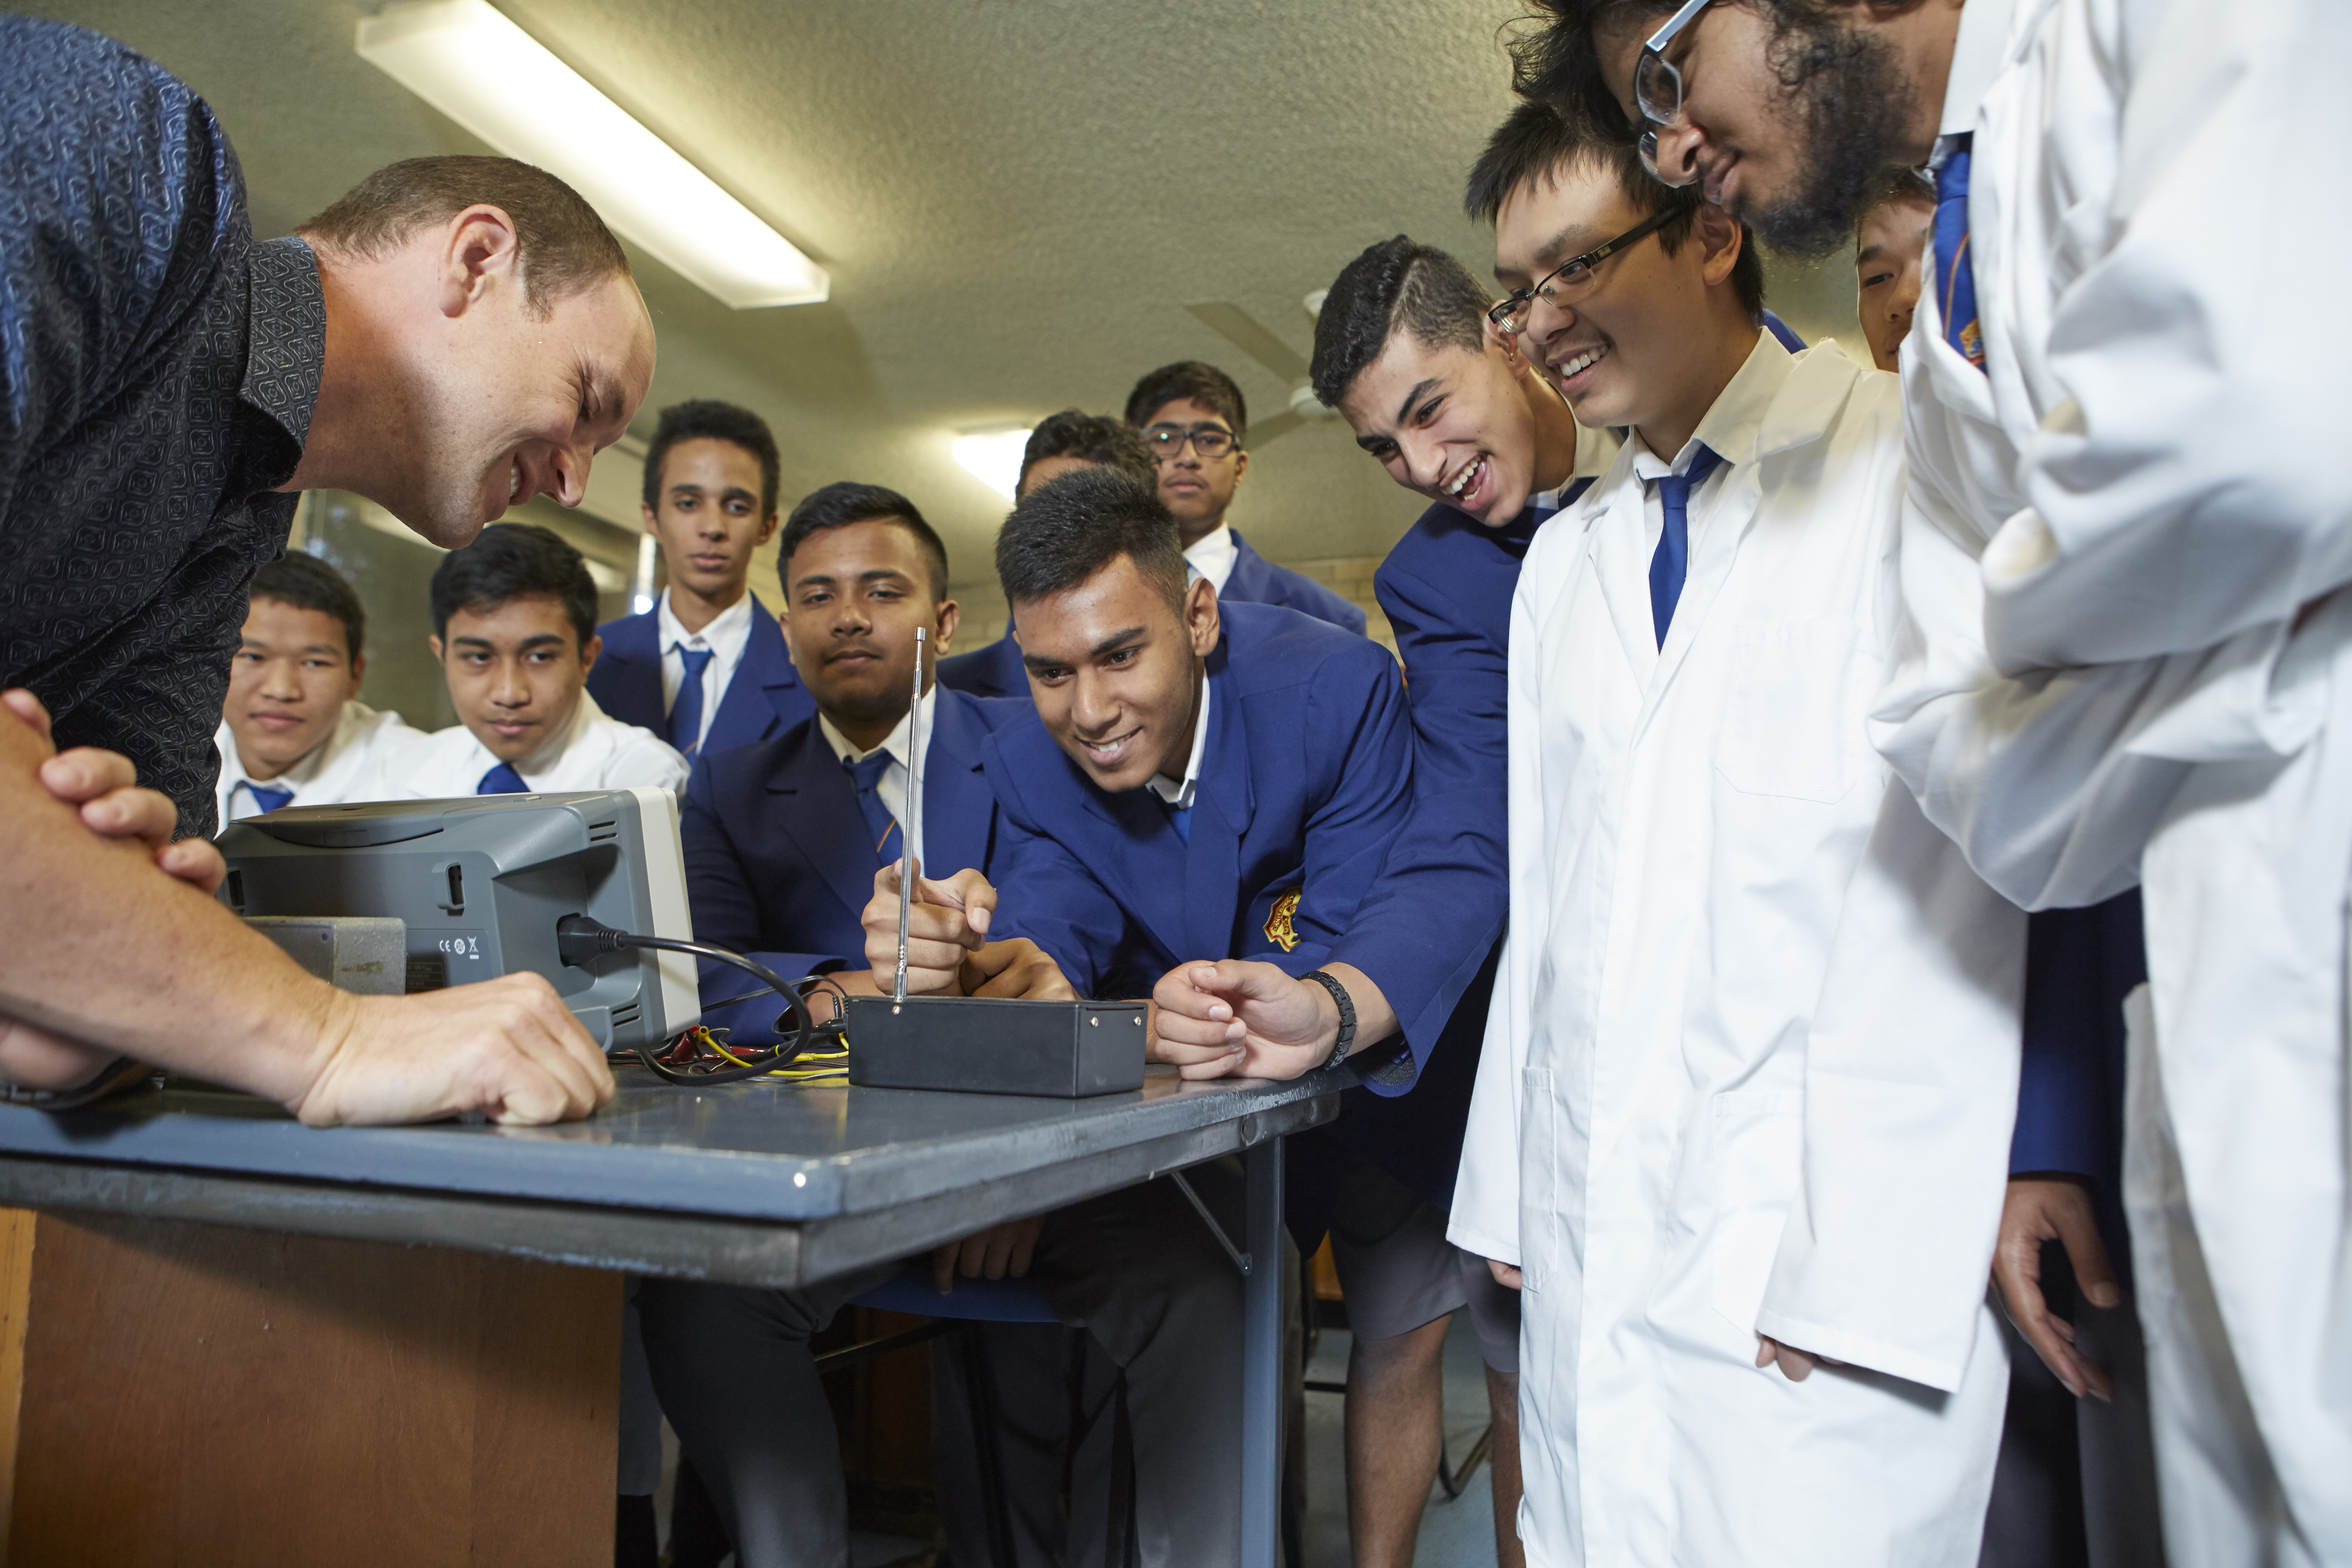 Teacher and students standing around a lab desk watching an experiment.